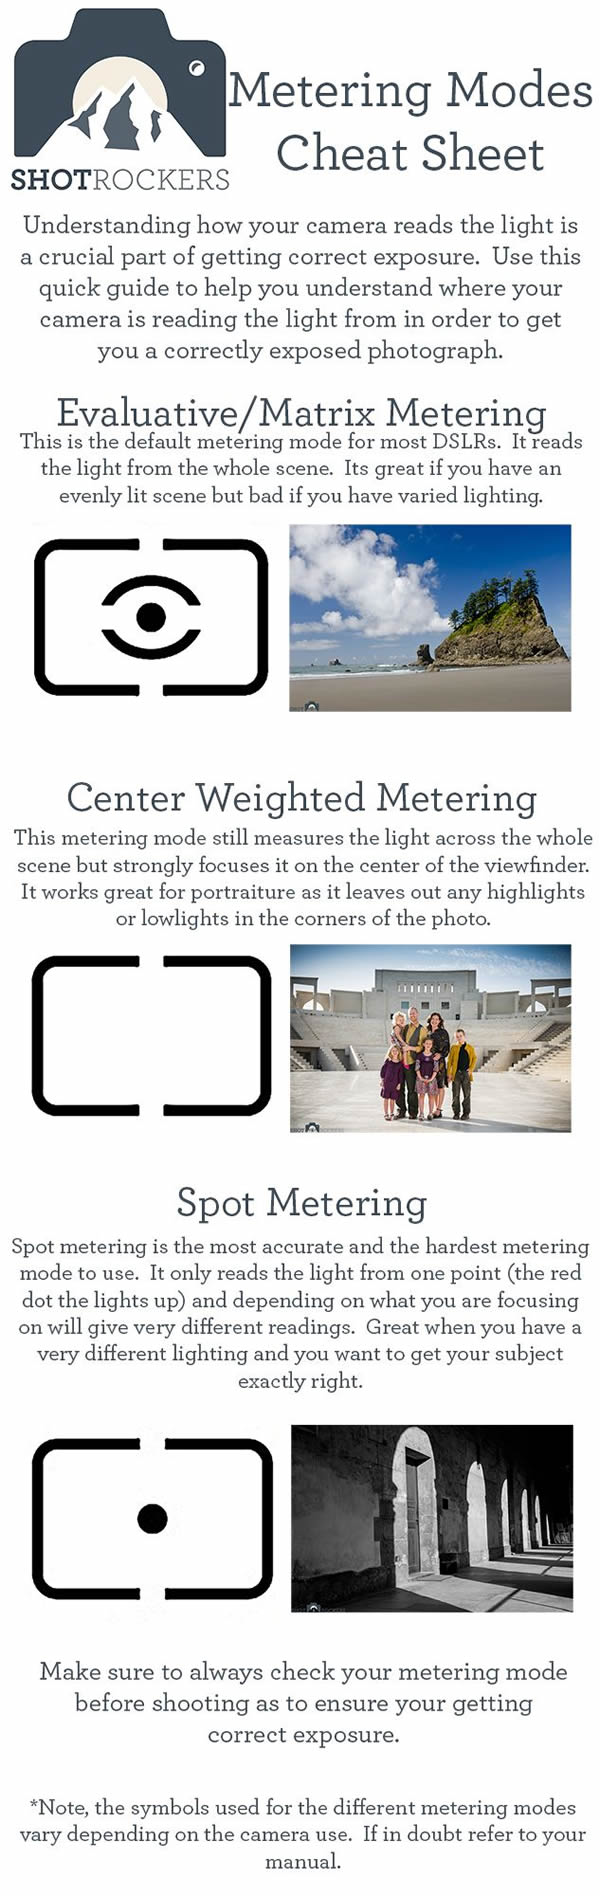 Metering Modes Cheat Sheet